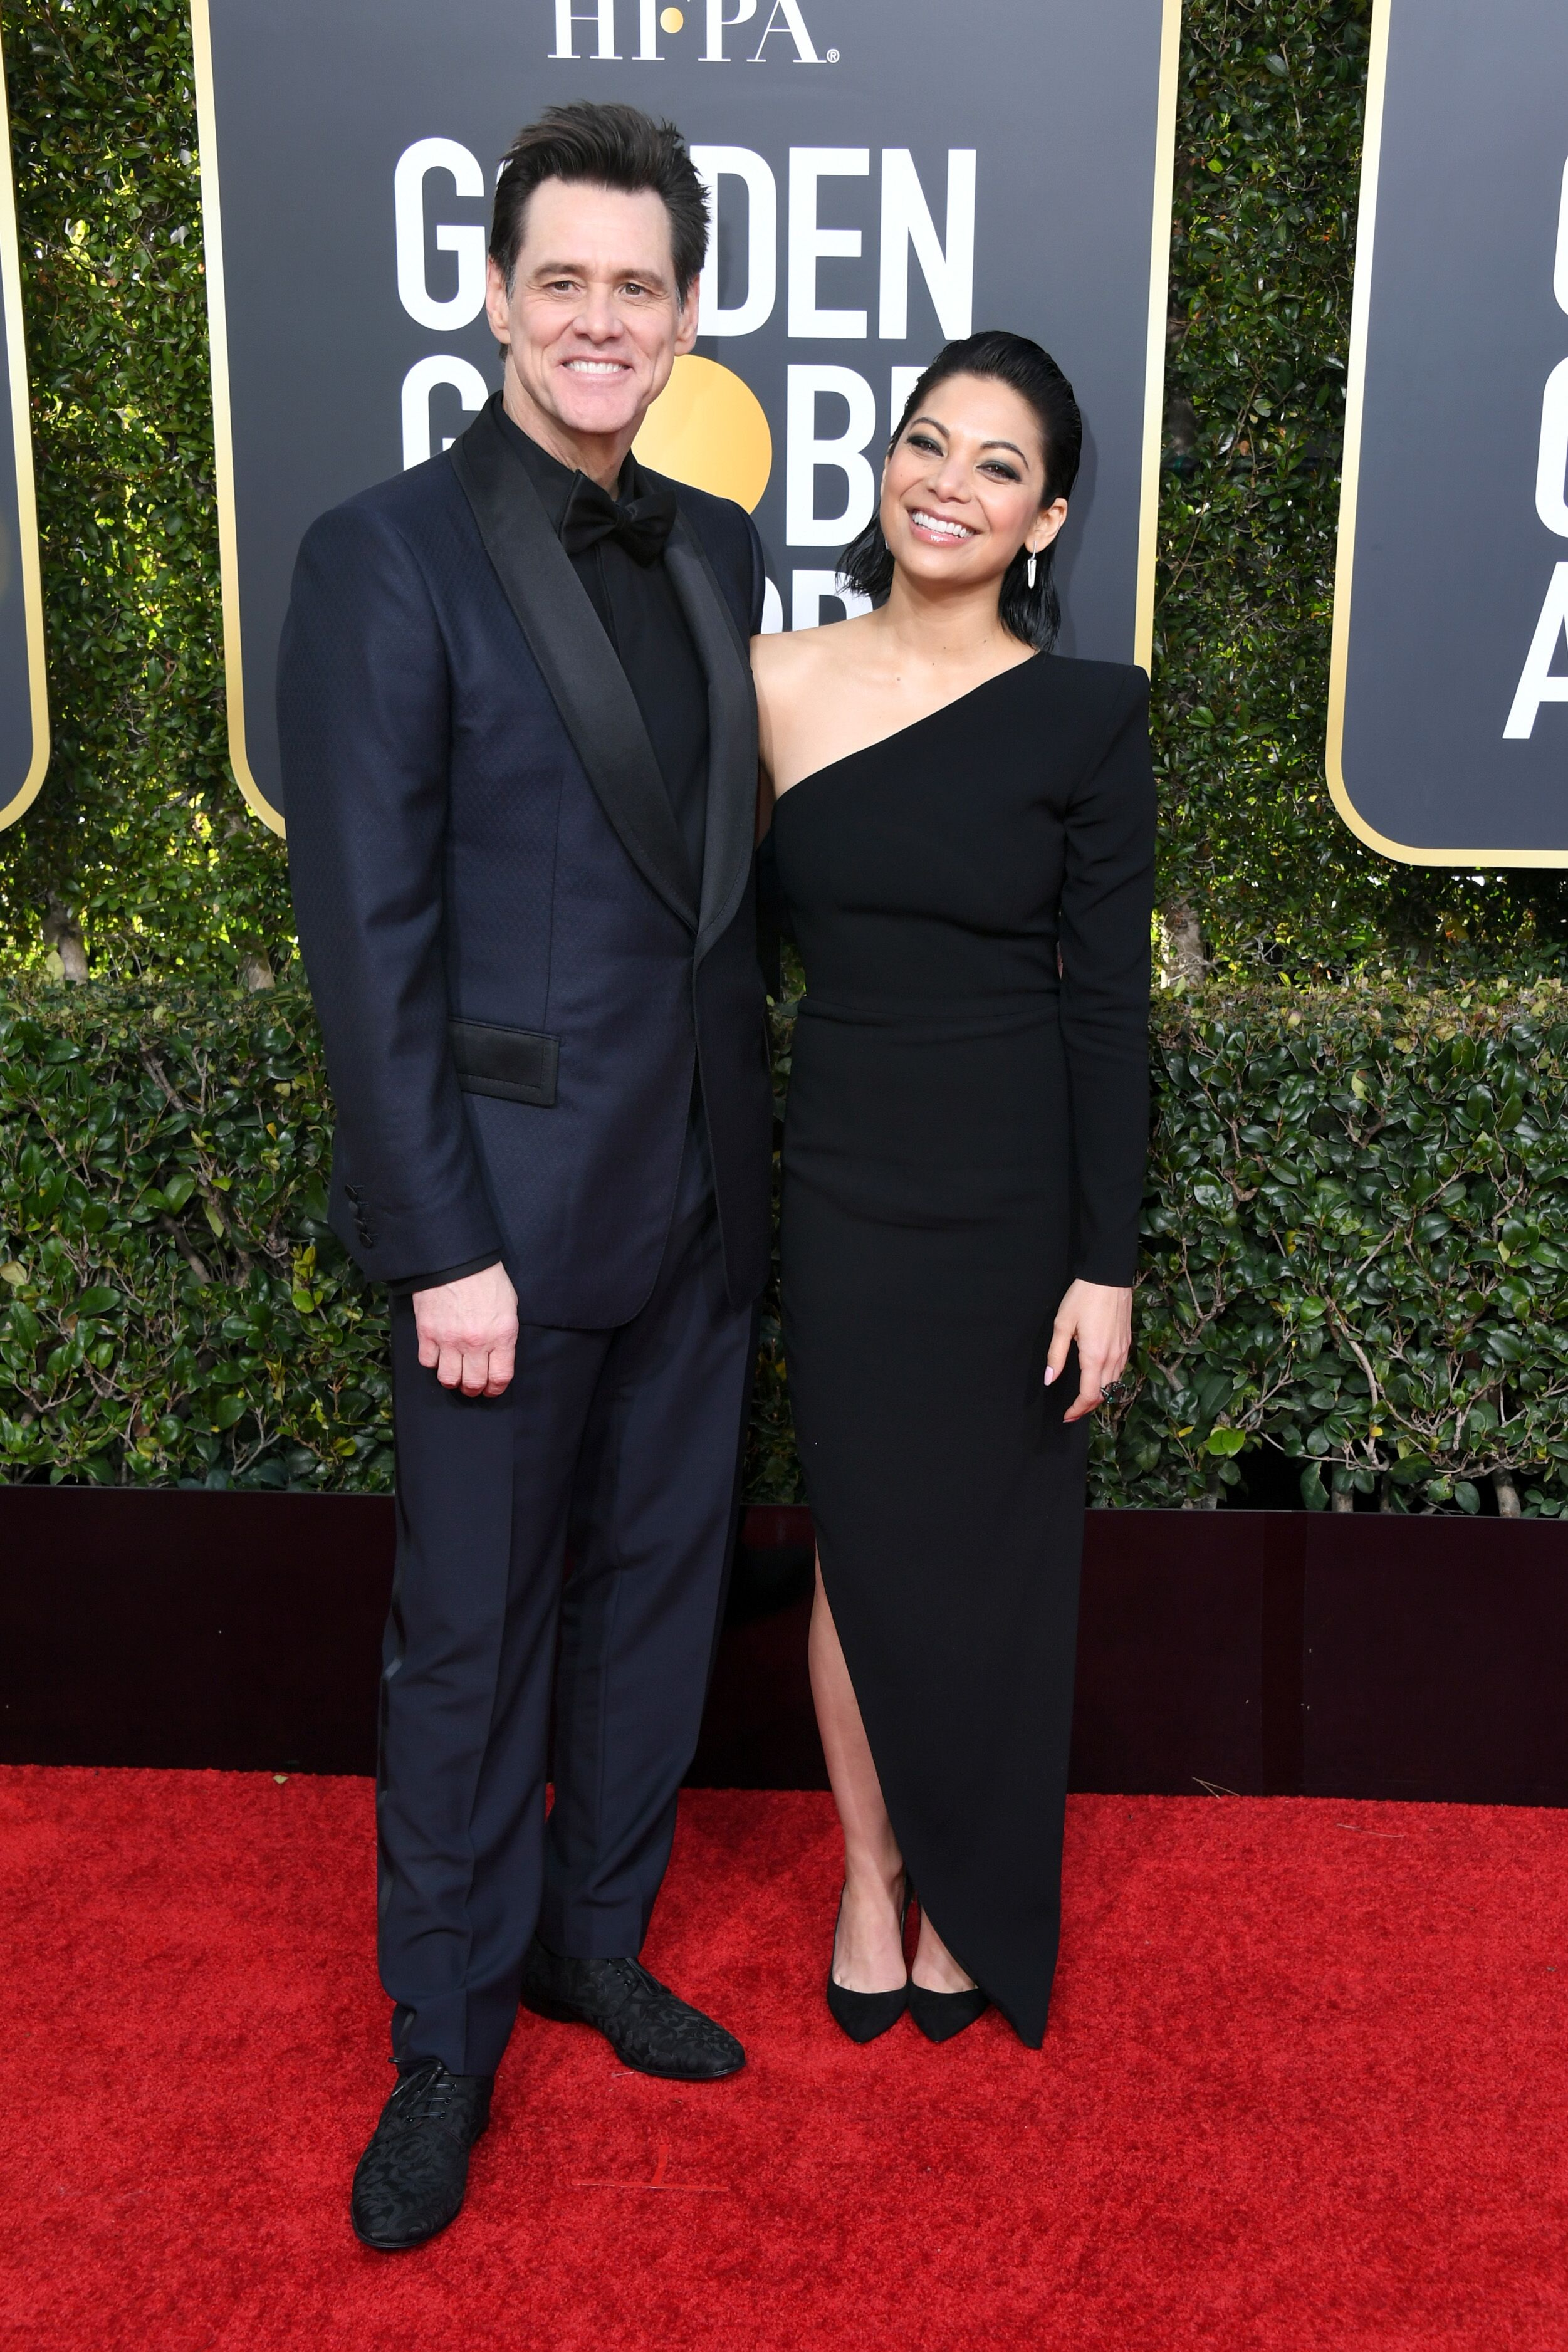 jim Carrey and Ginger Gonzaga attend the 76th Annual Golden Globe Awards. | Source: Getty Images